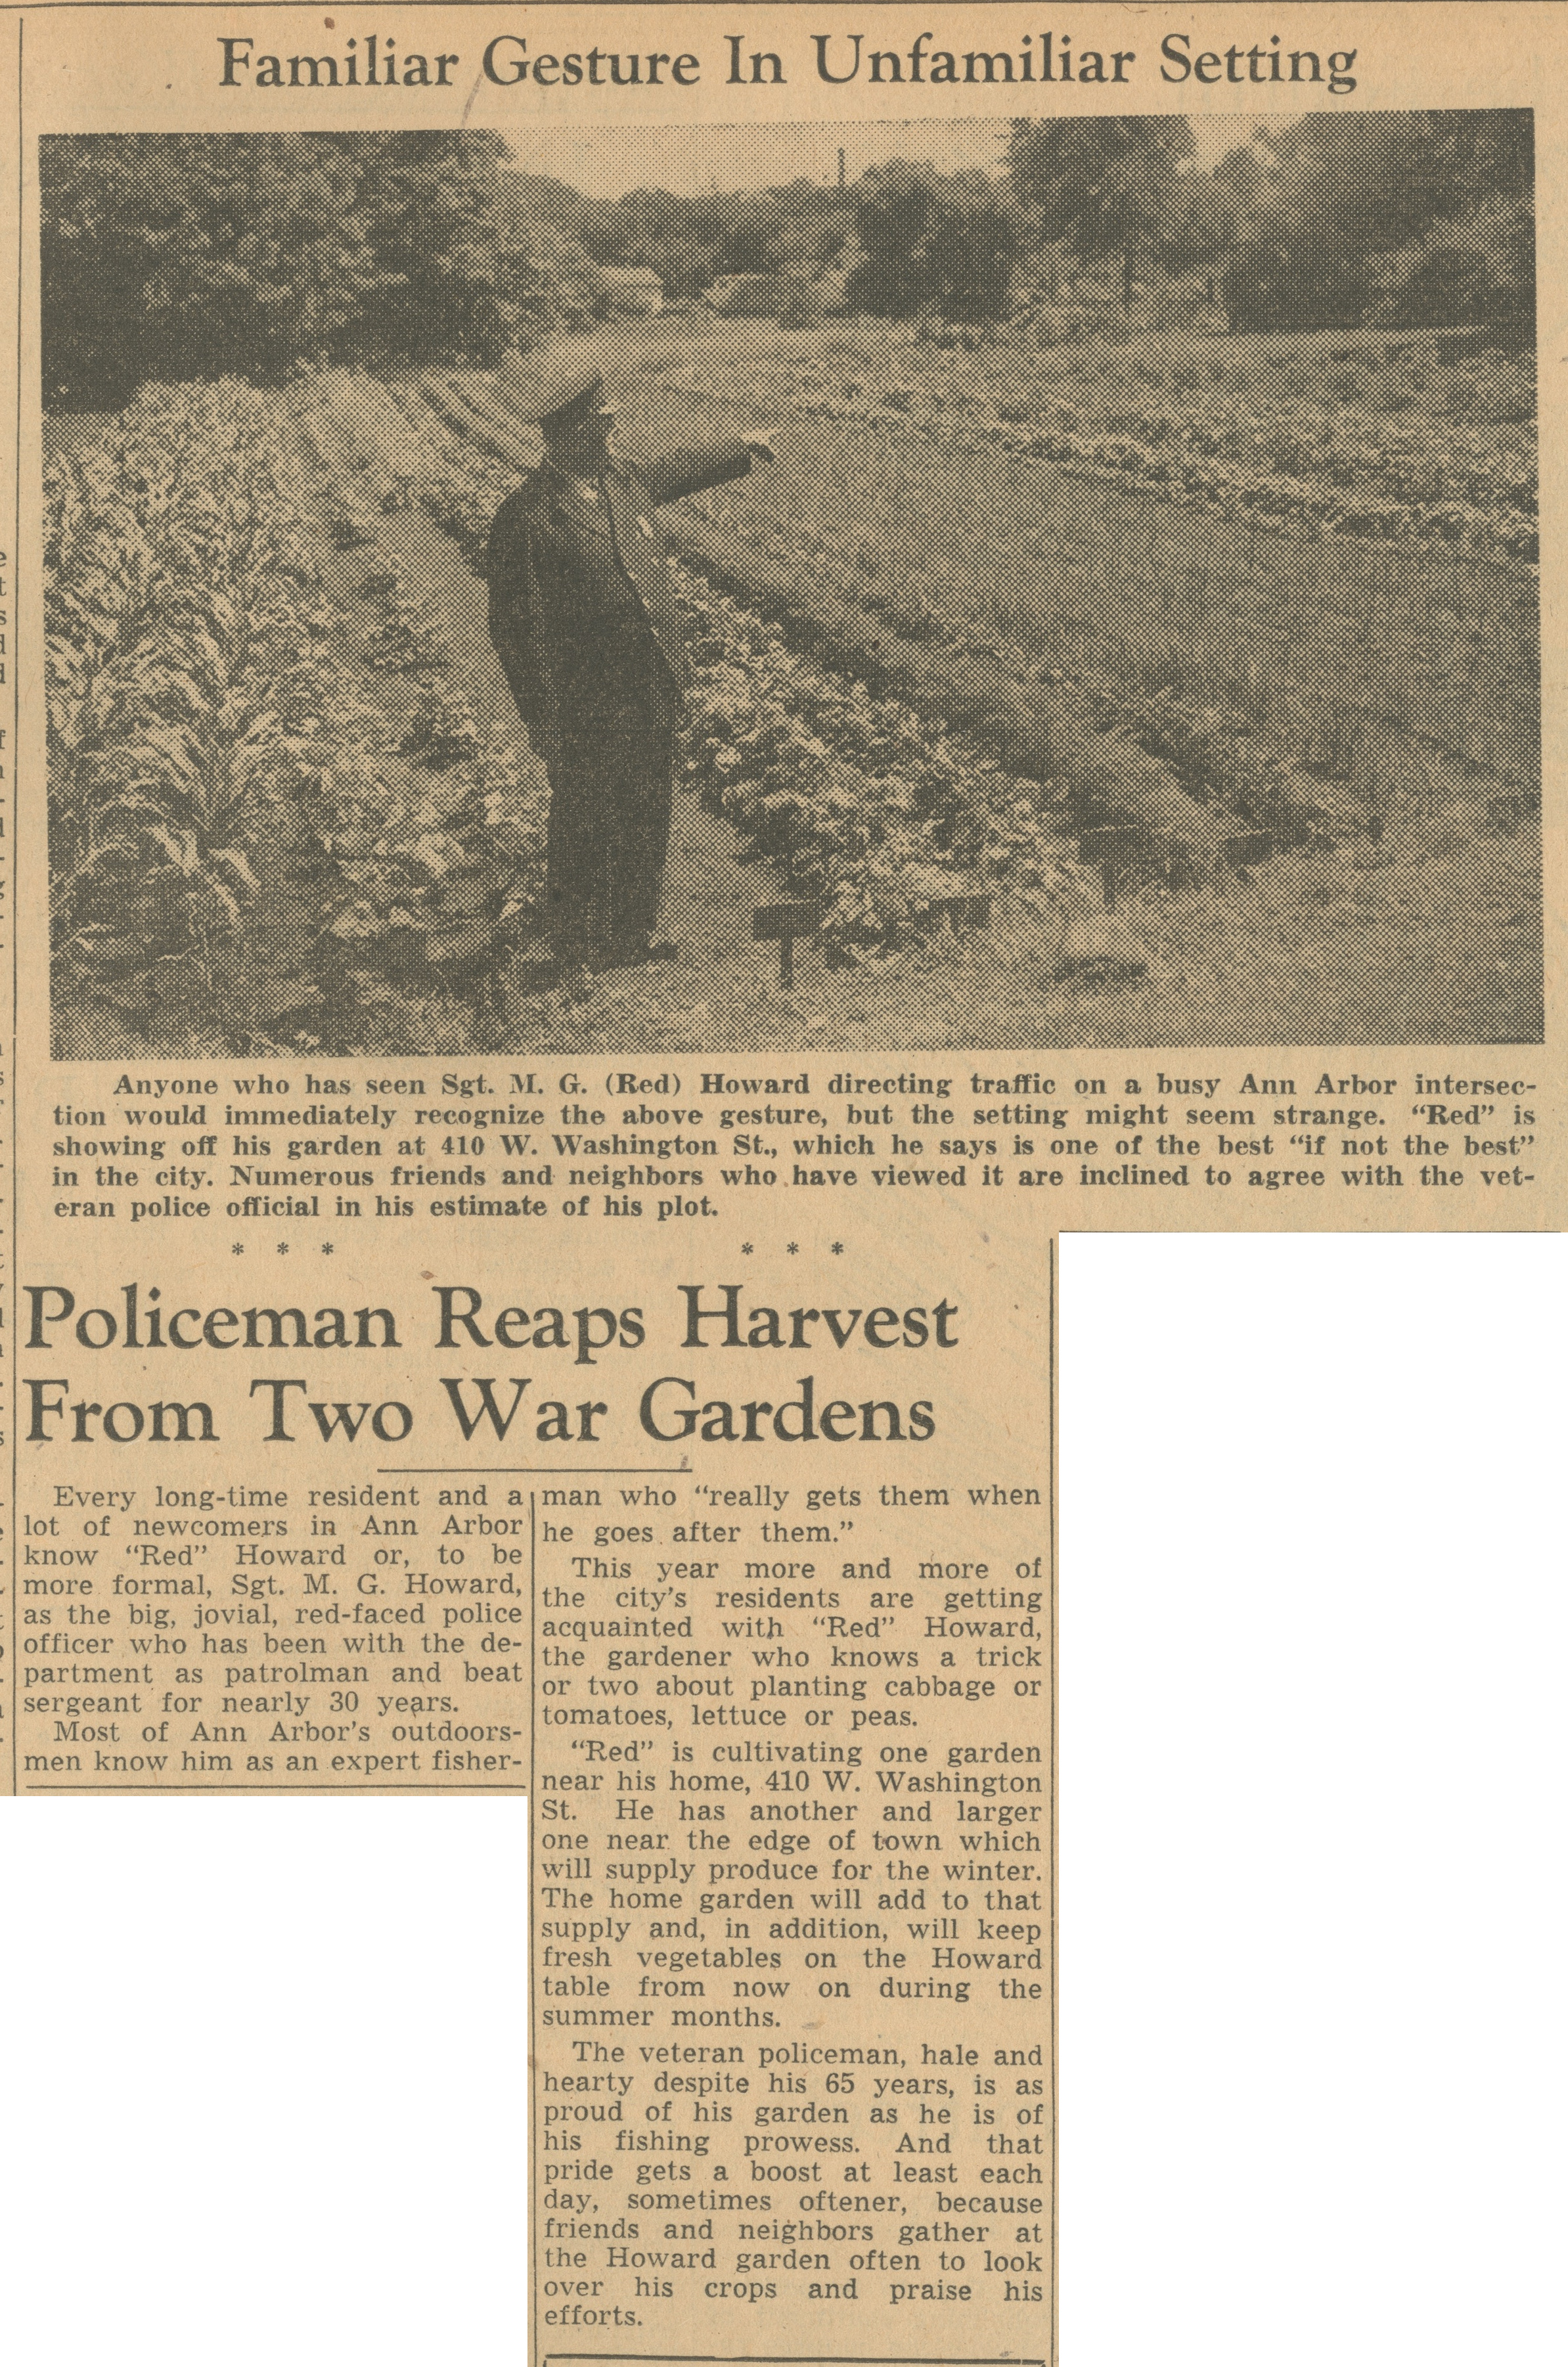 Familiar Gesture In Unfamiliar Setting - Policeman Reaps Harvest From Two War Gardens image